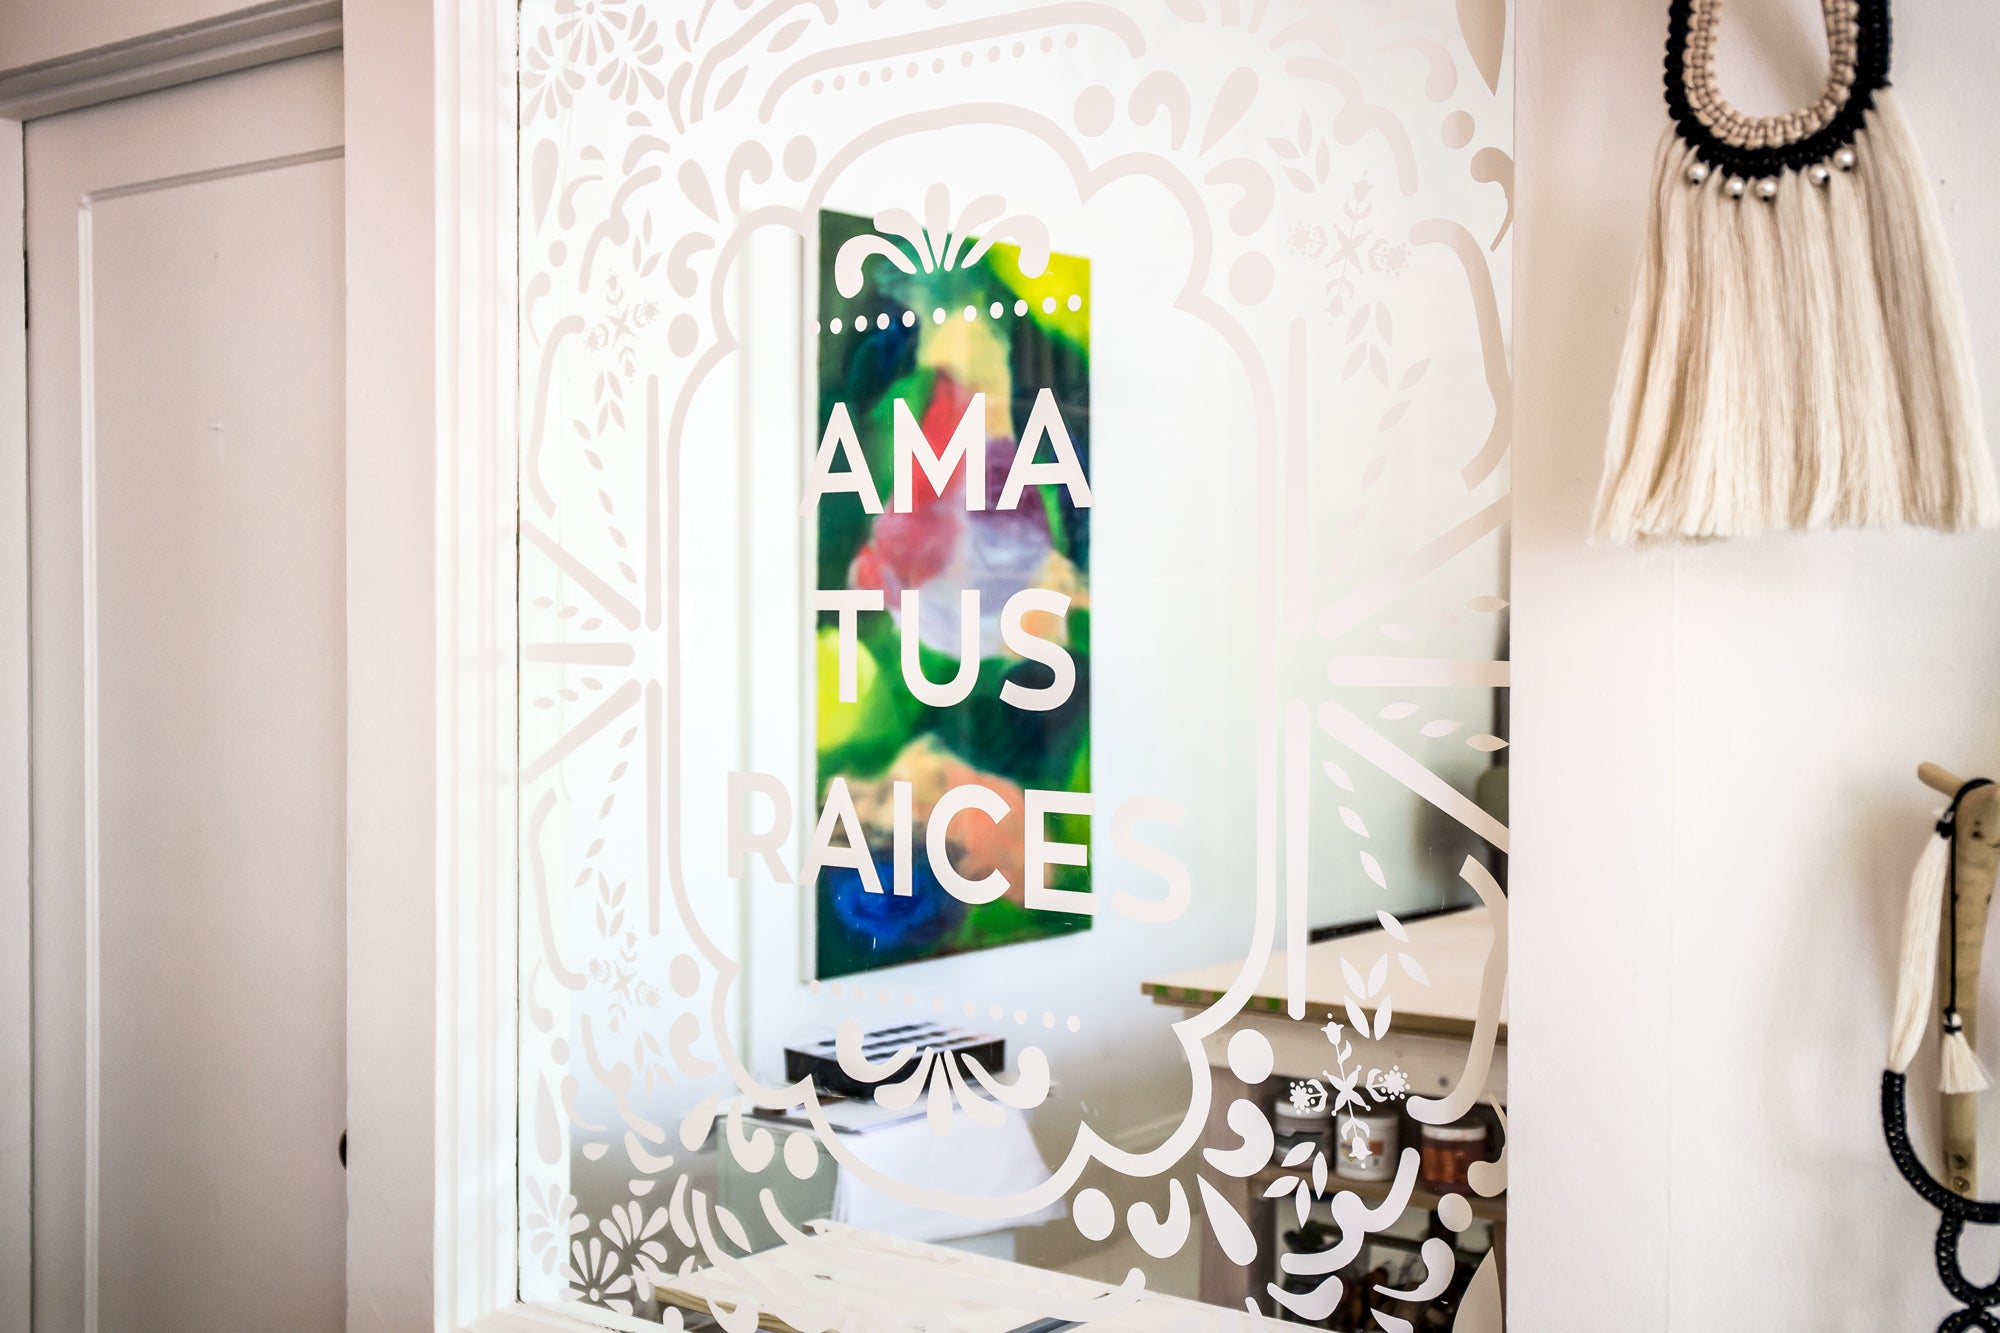 Ama Tus Raices window decal inside Vía Raíz shop